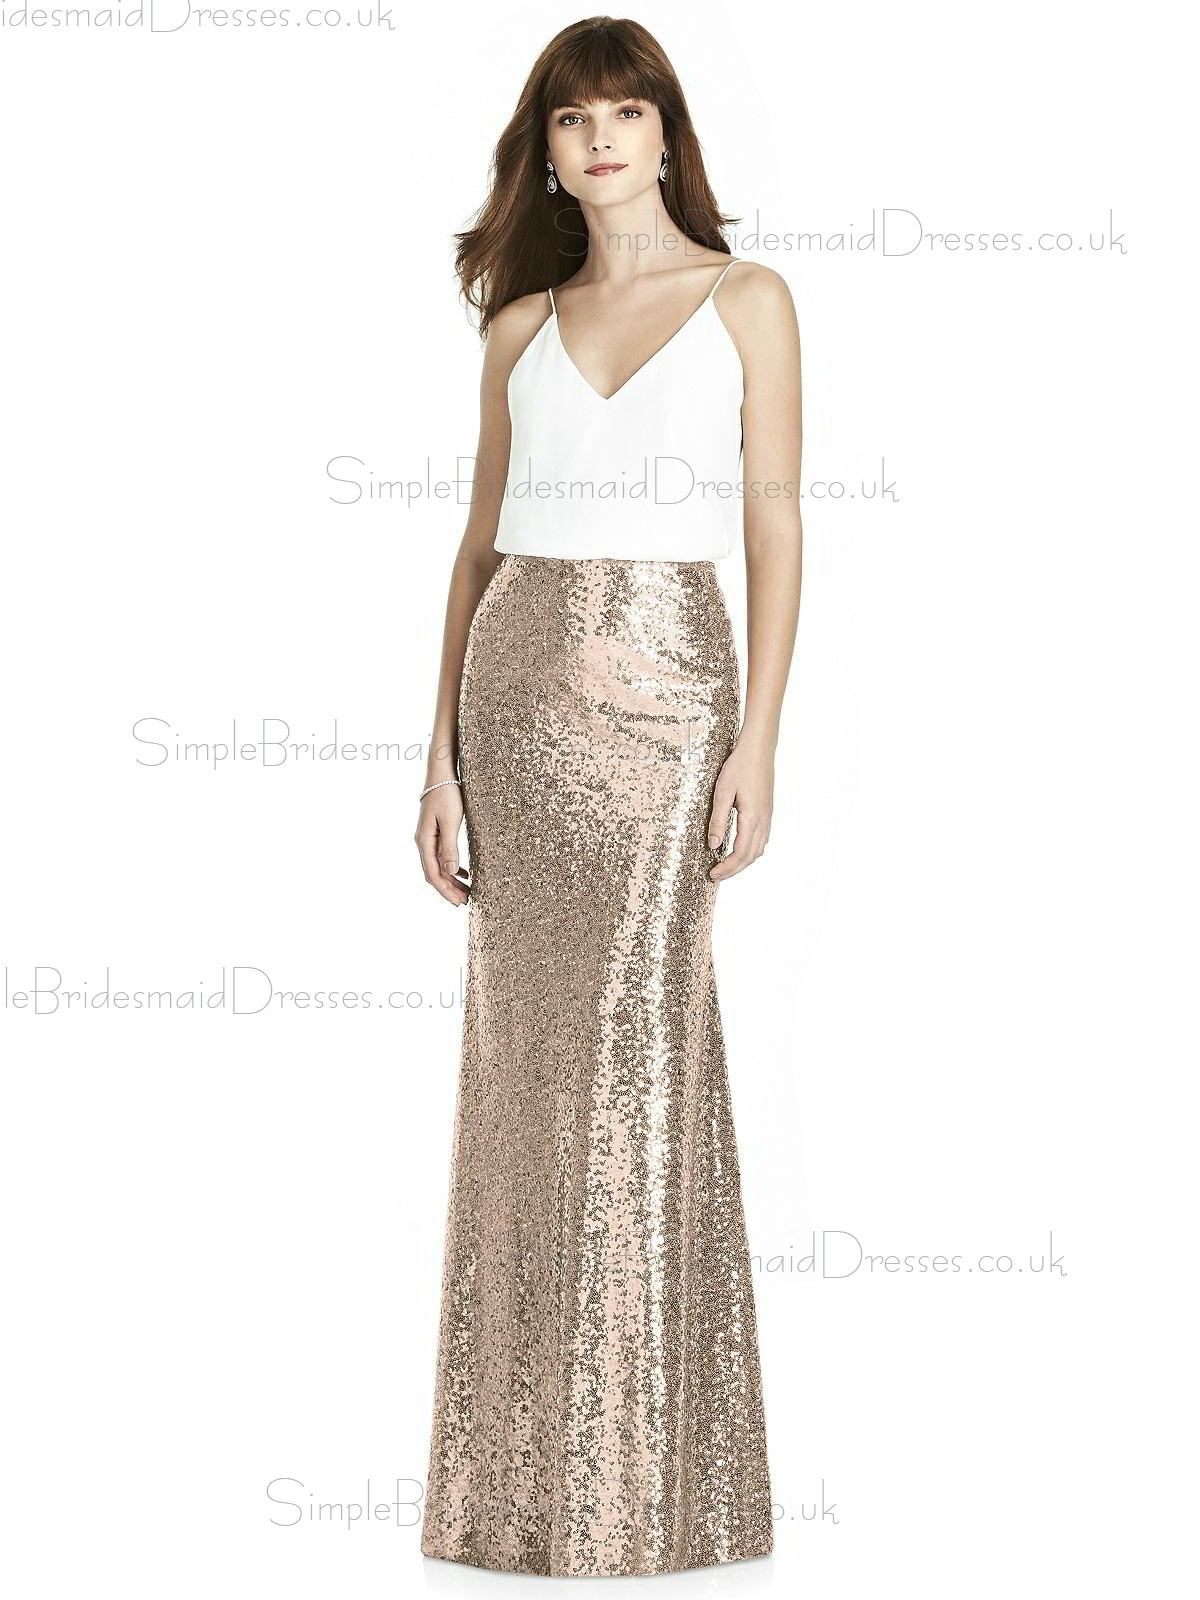 b41c858101 ... Backless Bridesmaid Dress. Cheap Stunning Column   Sheath Sequin V-neck  Floor-length Gold Sleeveless Empire Waist ...